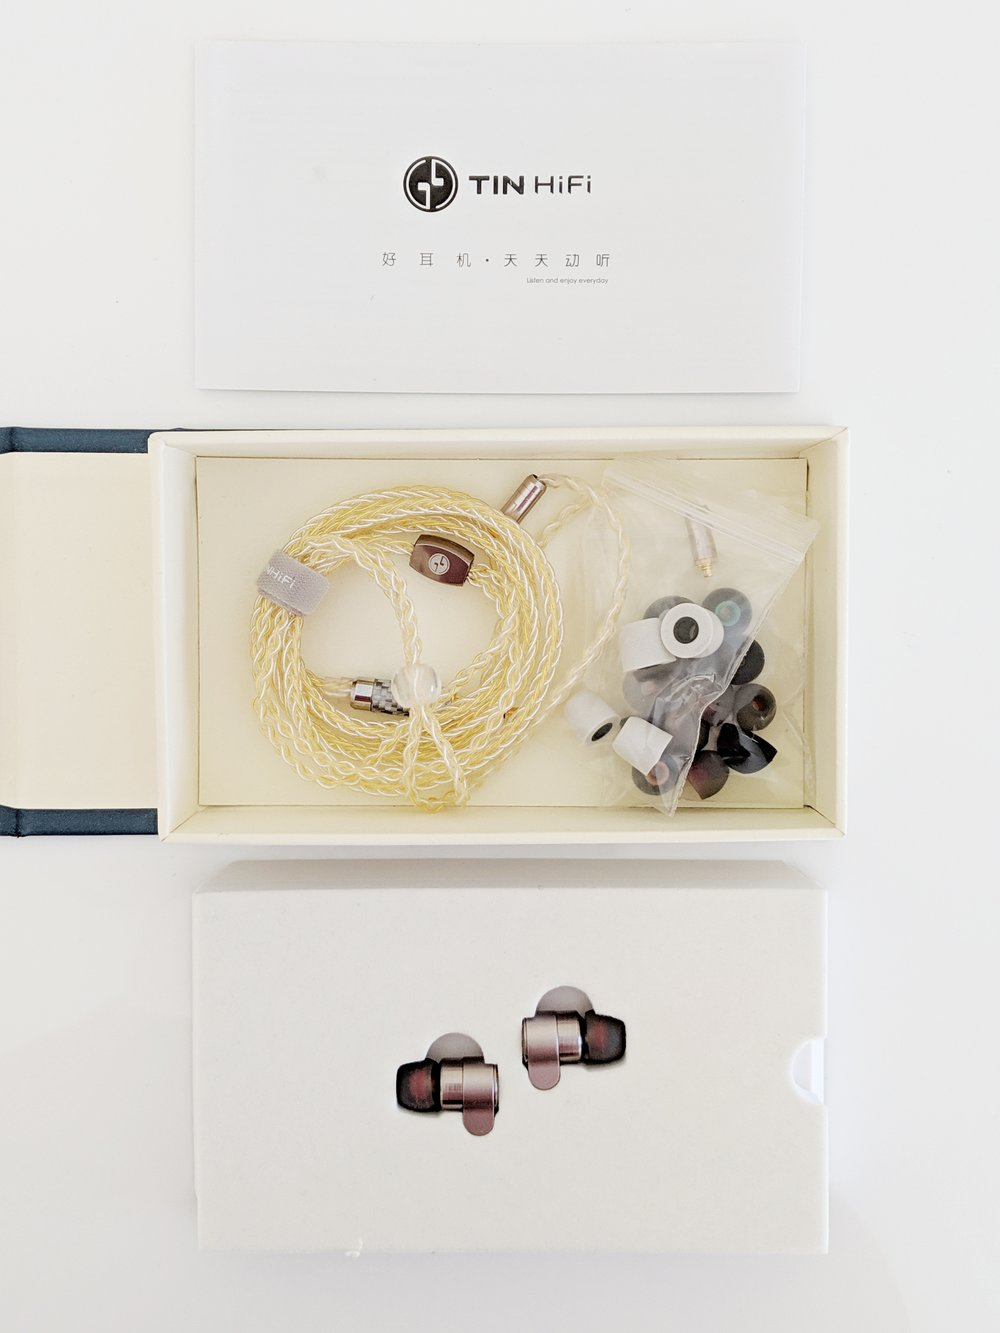 This is what is inside of the box, Earphones, eartips and the beautiful braided cable.